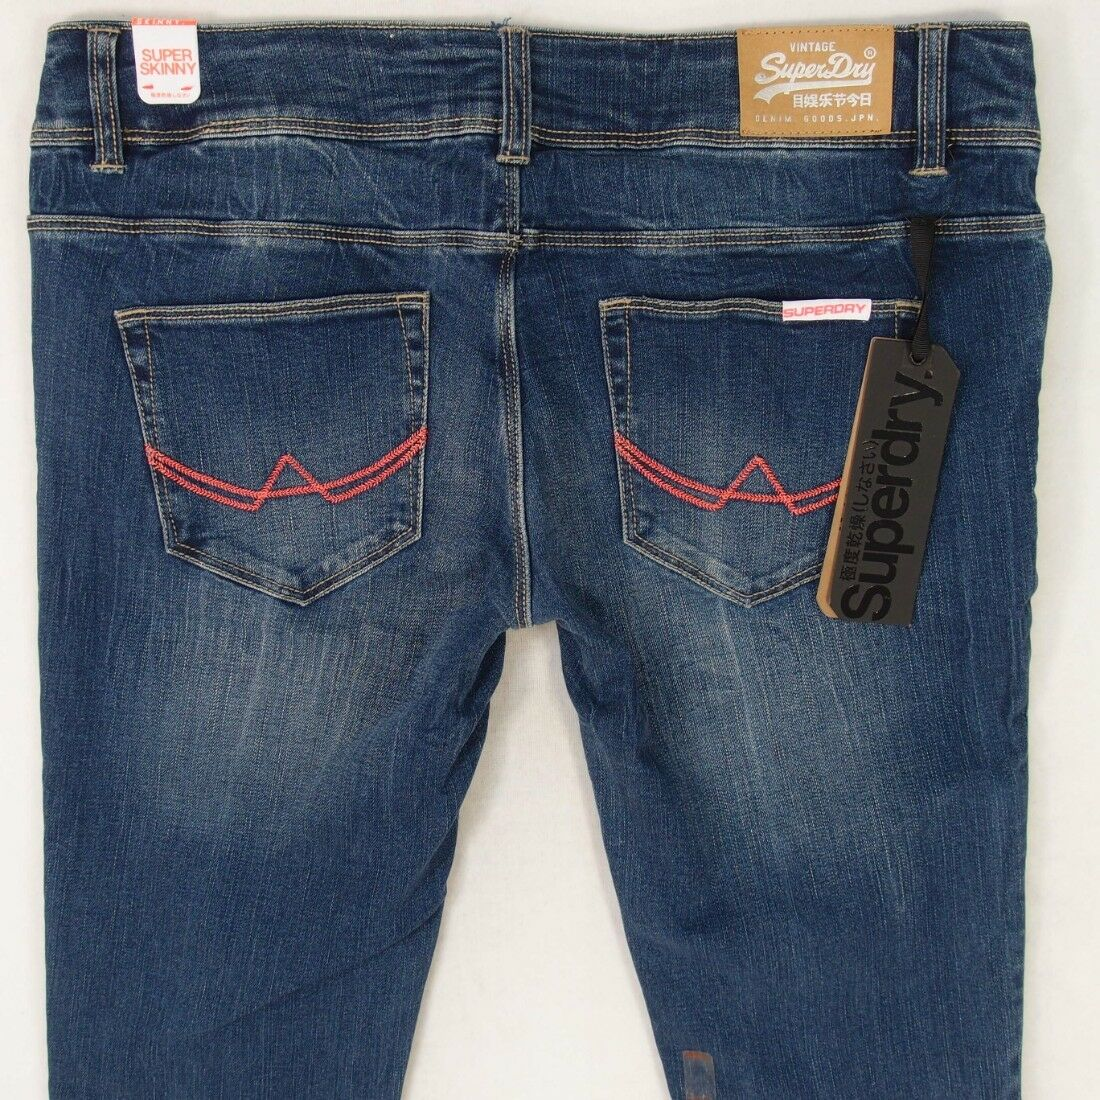 NEW Womens SuperDry SUPERSKINNY Stretch Skinny bluee Jeans W32 L32 BNWT Size 12